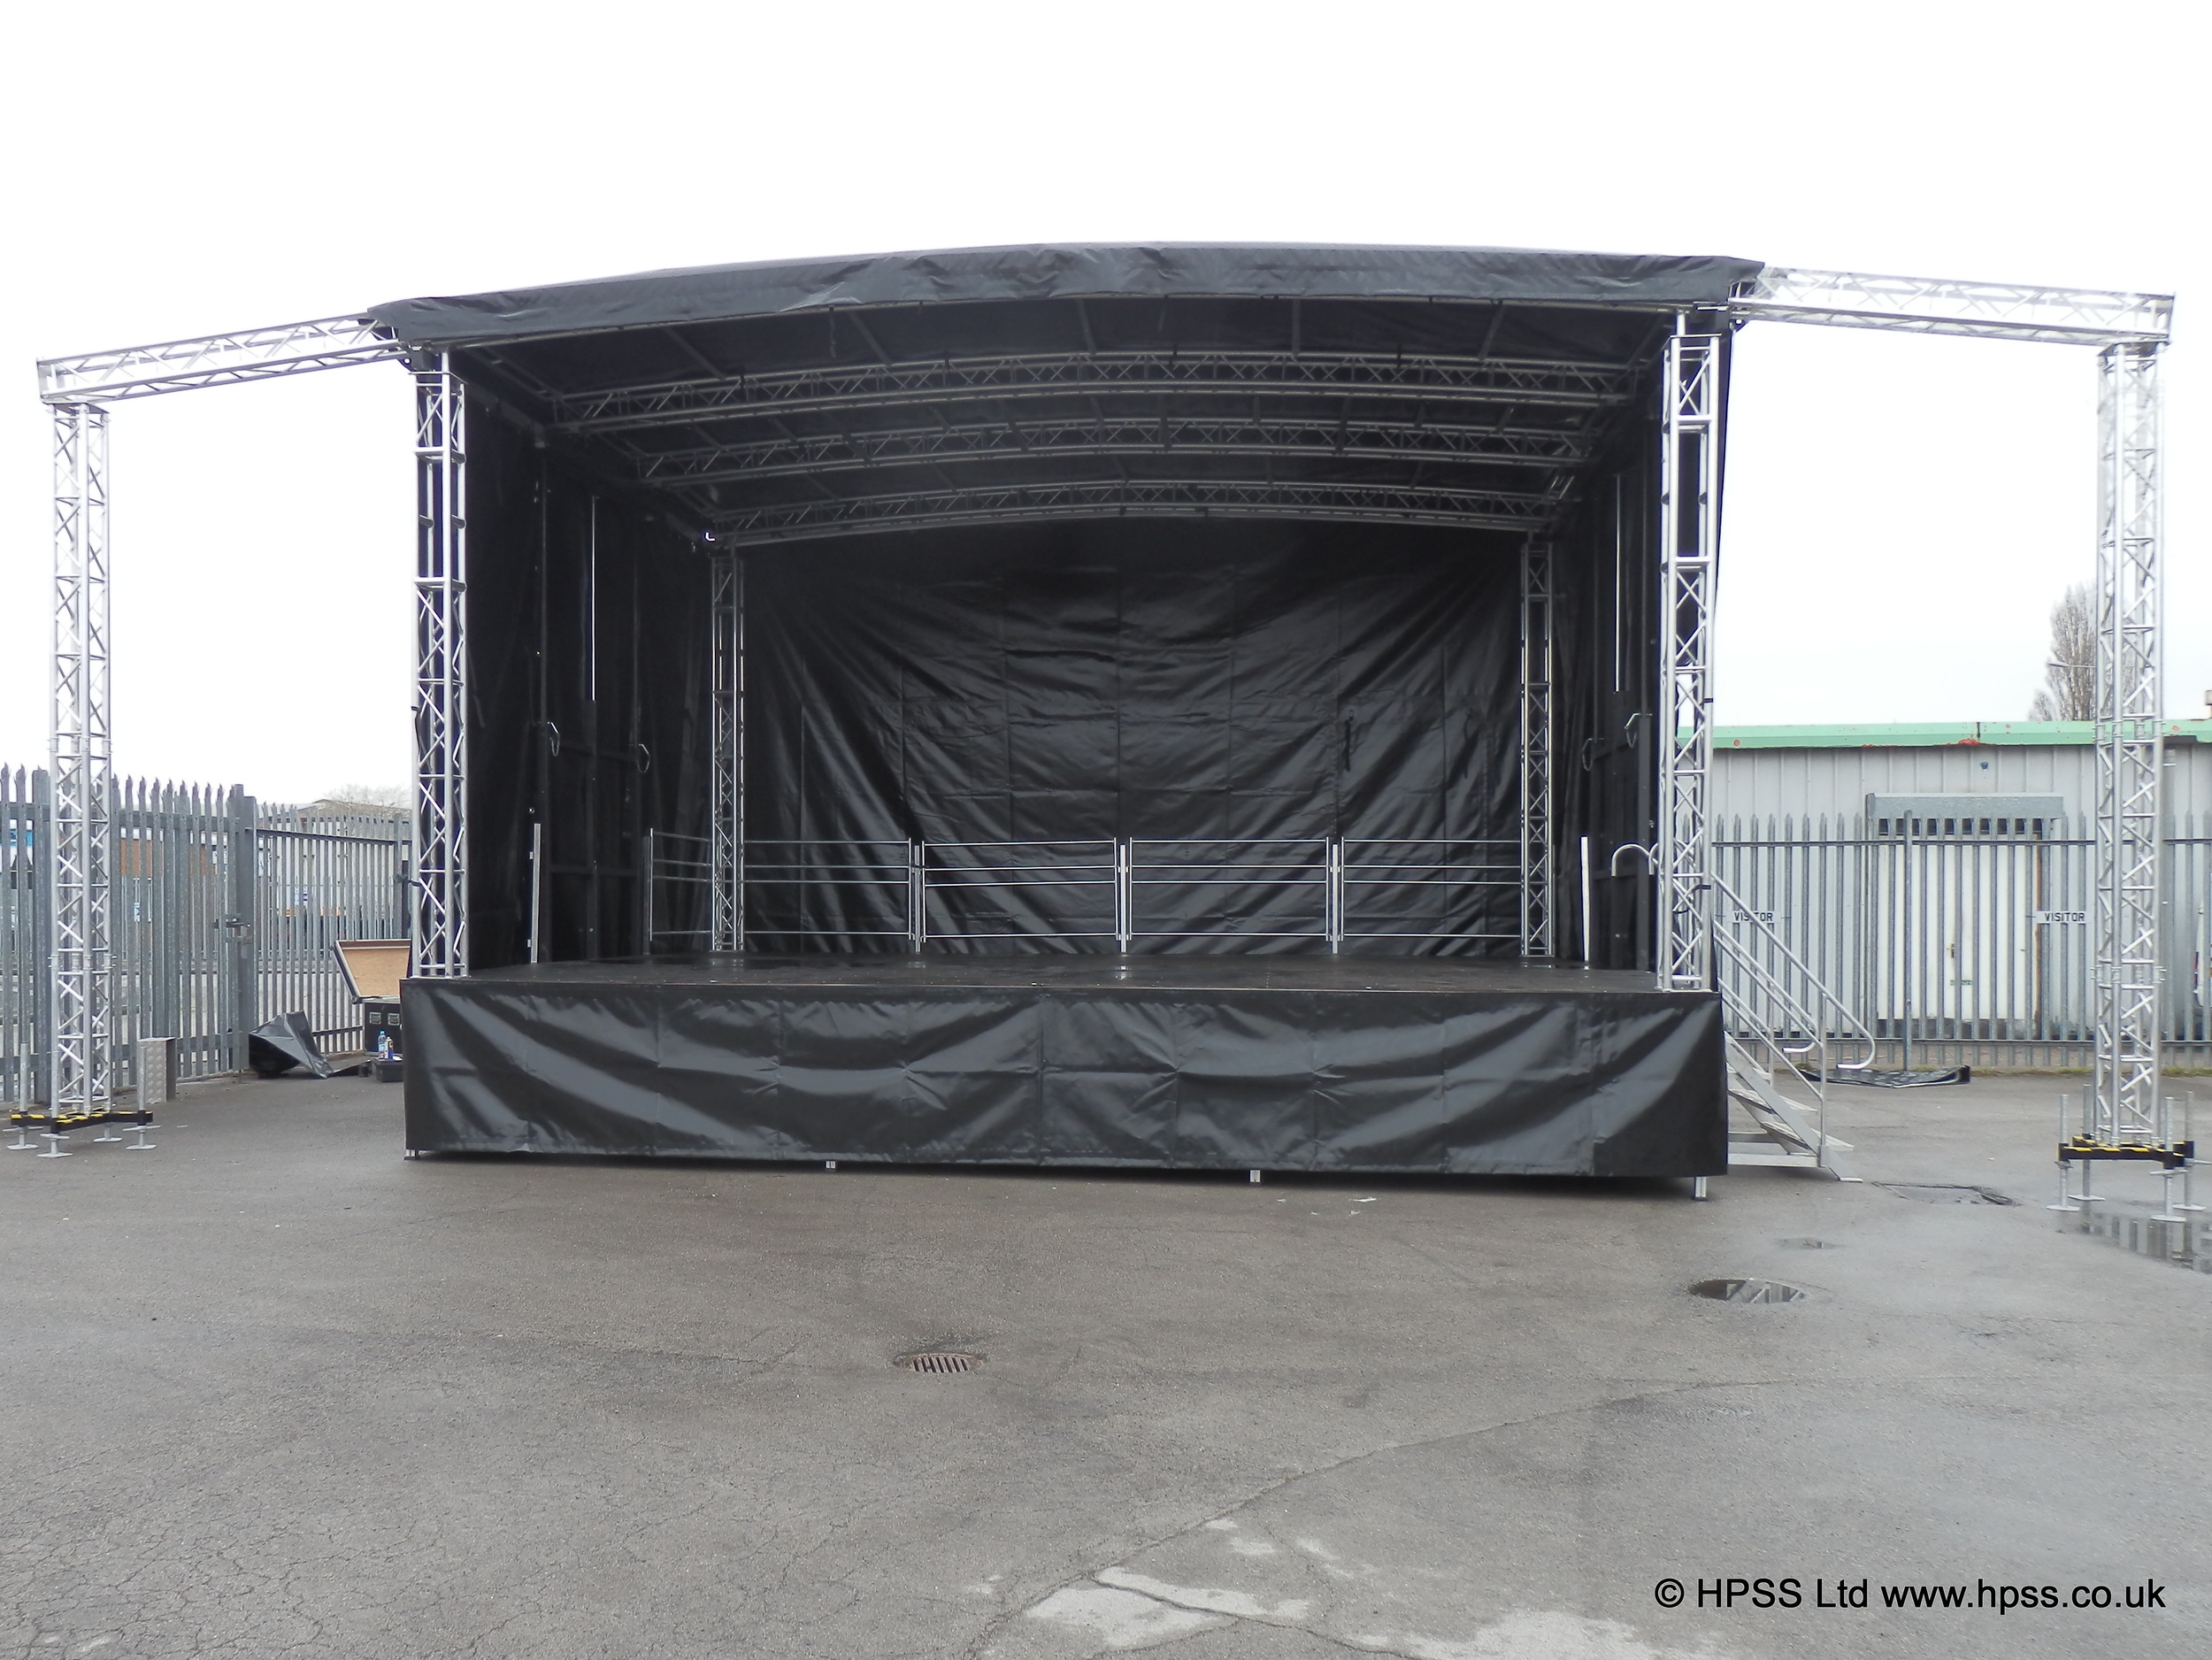 Trailer stage with wings